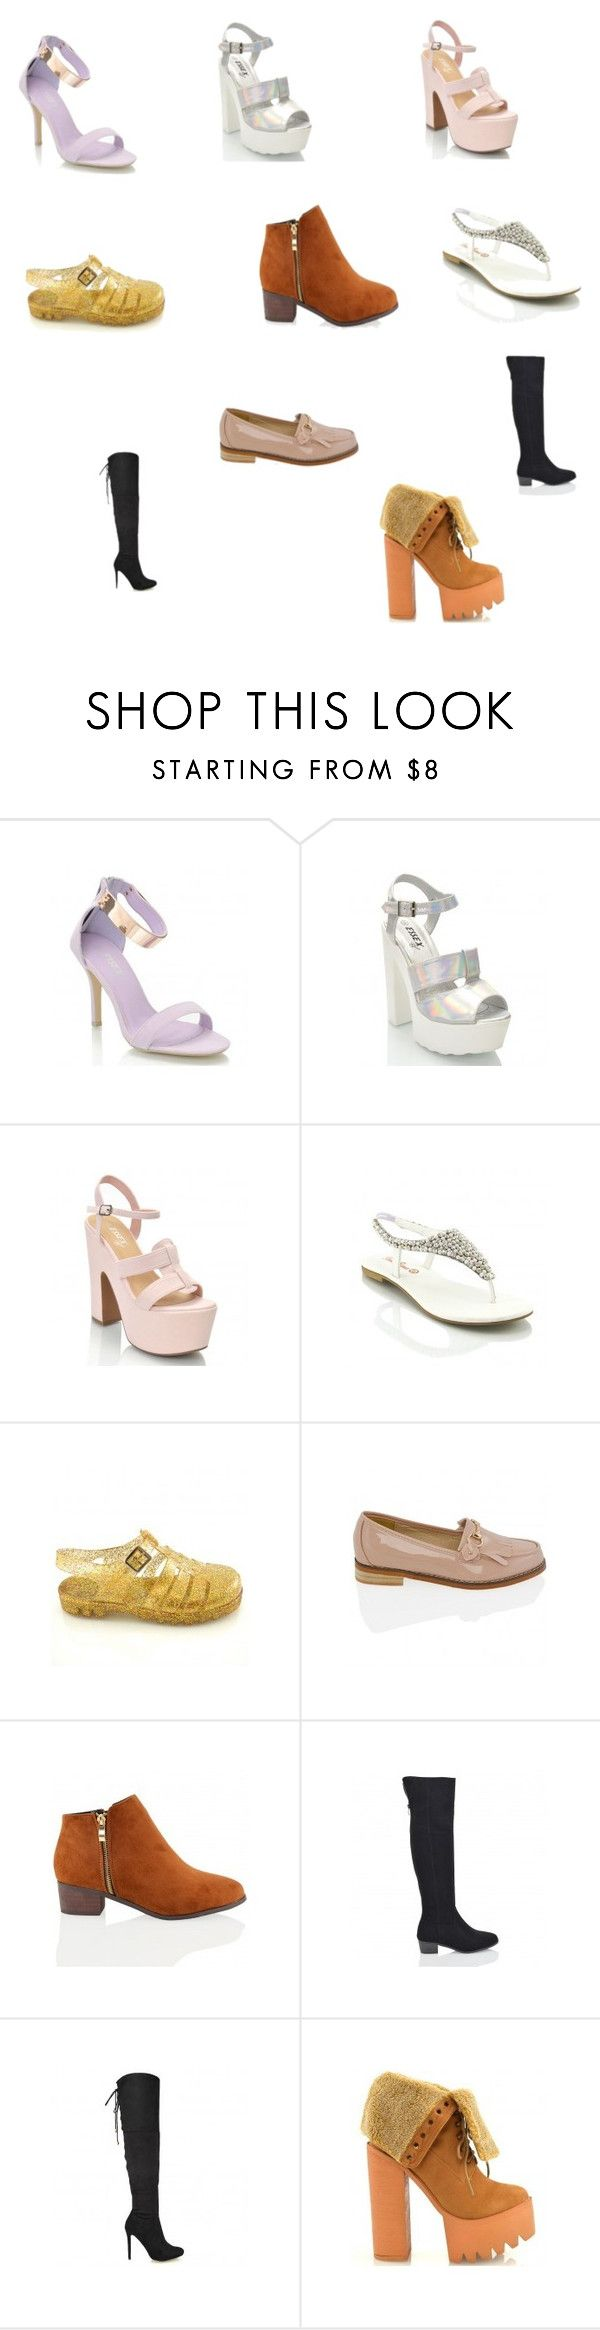 """Buy Ladies Shoes Online"" by essex-shoes ❤ liked on Polyvore featuring Jelly Belly"